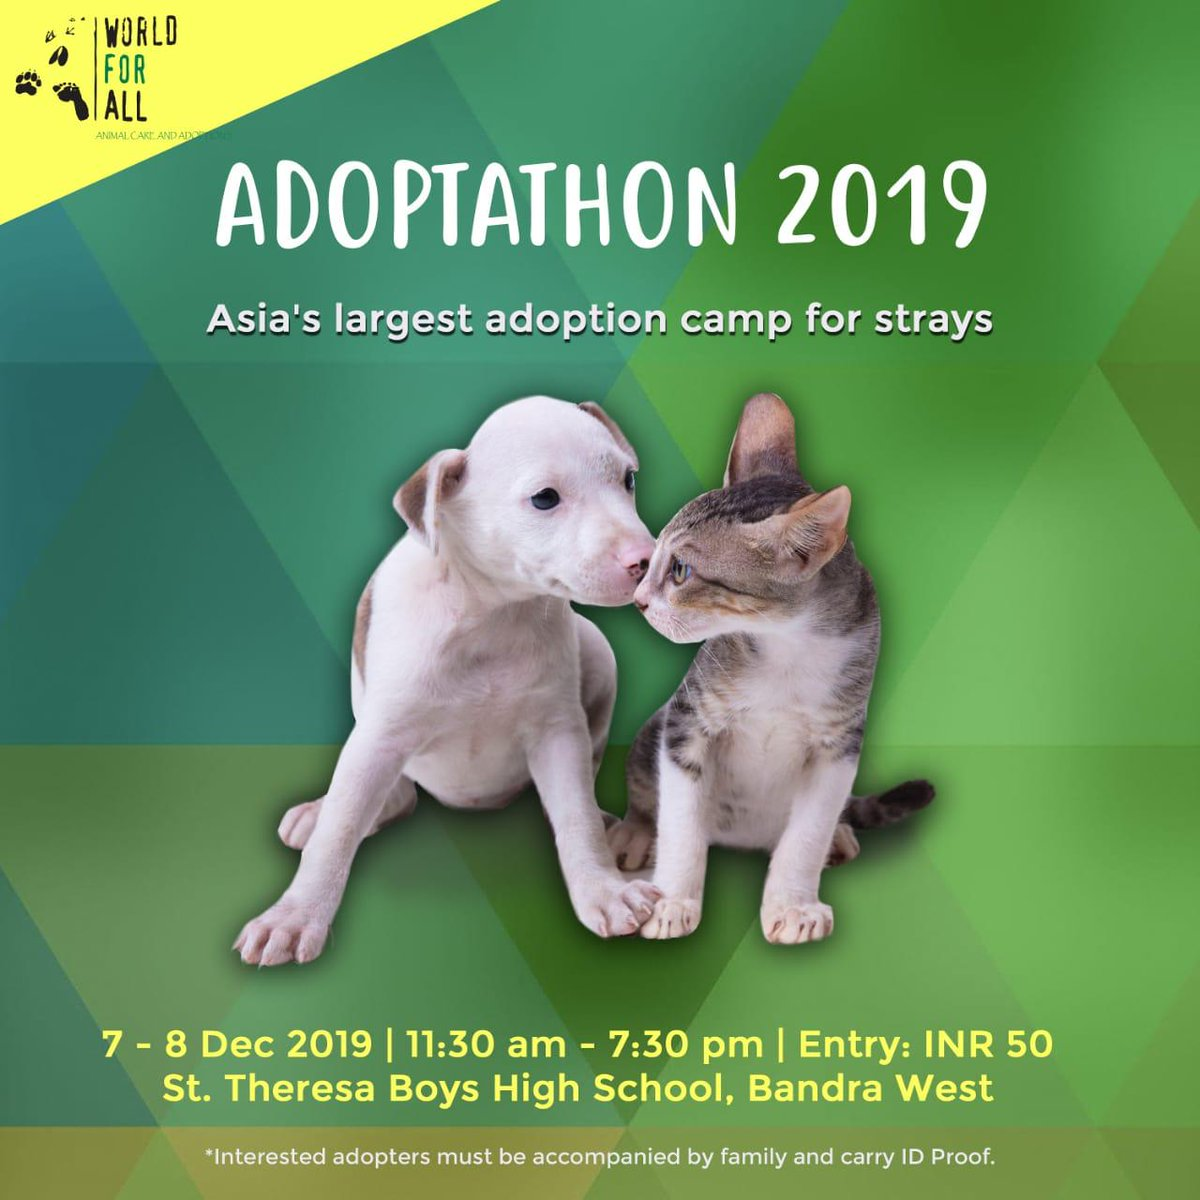 ADOPTATHON 2019, the happiest adoption camp is here!! Asia's biggest adoption camp 4 Indian breeds is returning this Dec where u cn meet & choose from over 180 healthy & super awesome puppies & kittens!! #Adoptathon #Adoptathon2019 #NationalMuttDay #AdoptDontShop #AdoptionDay